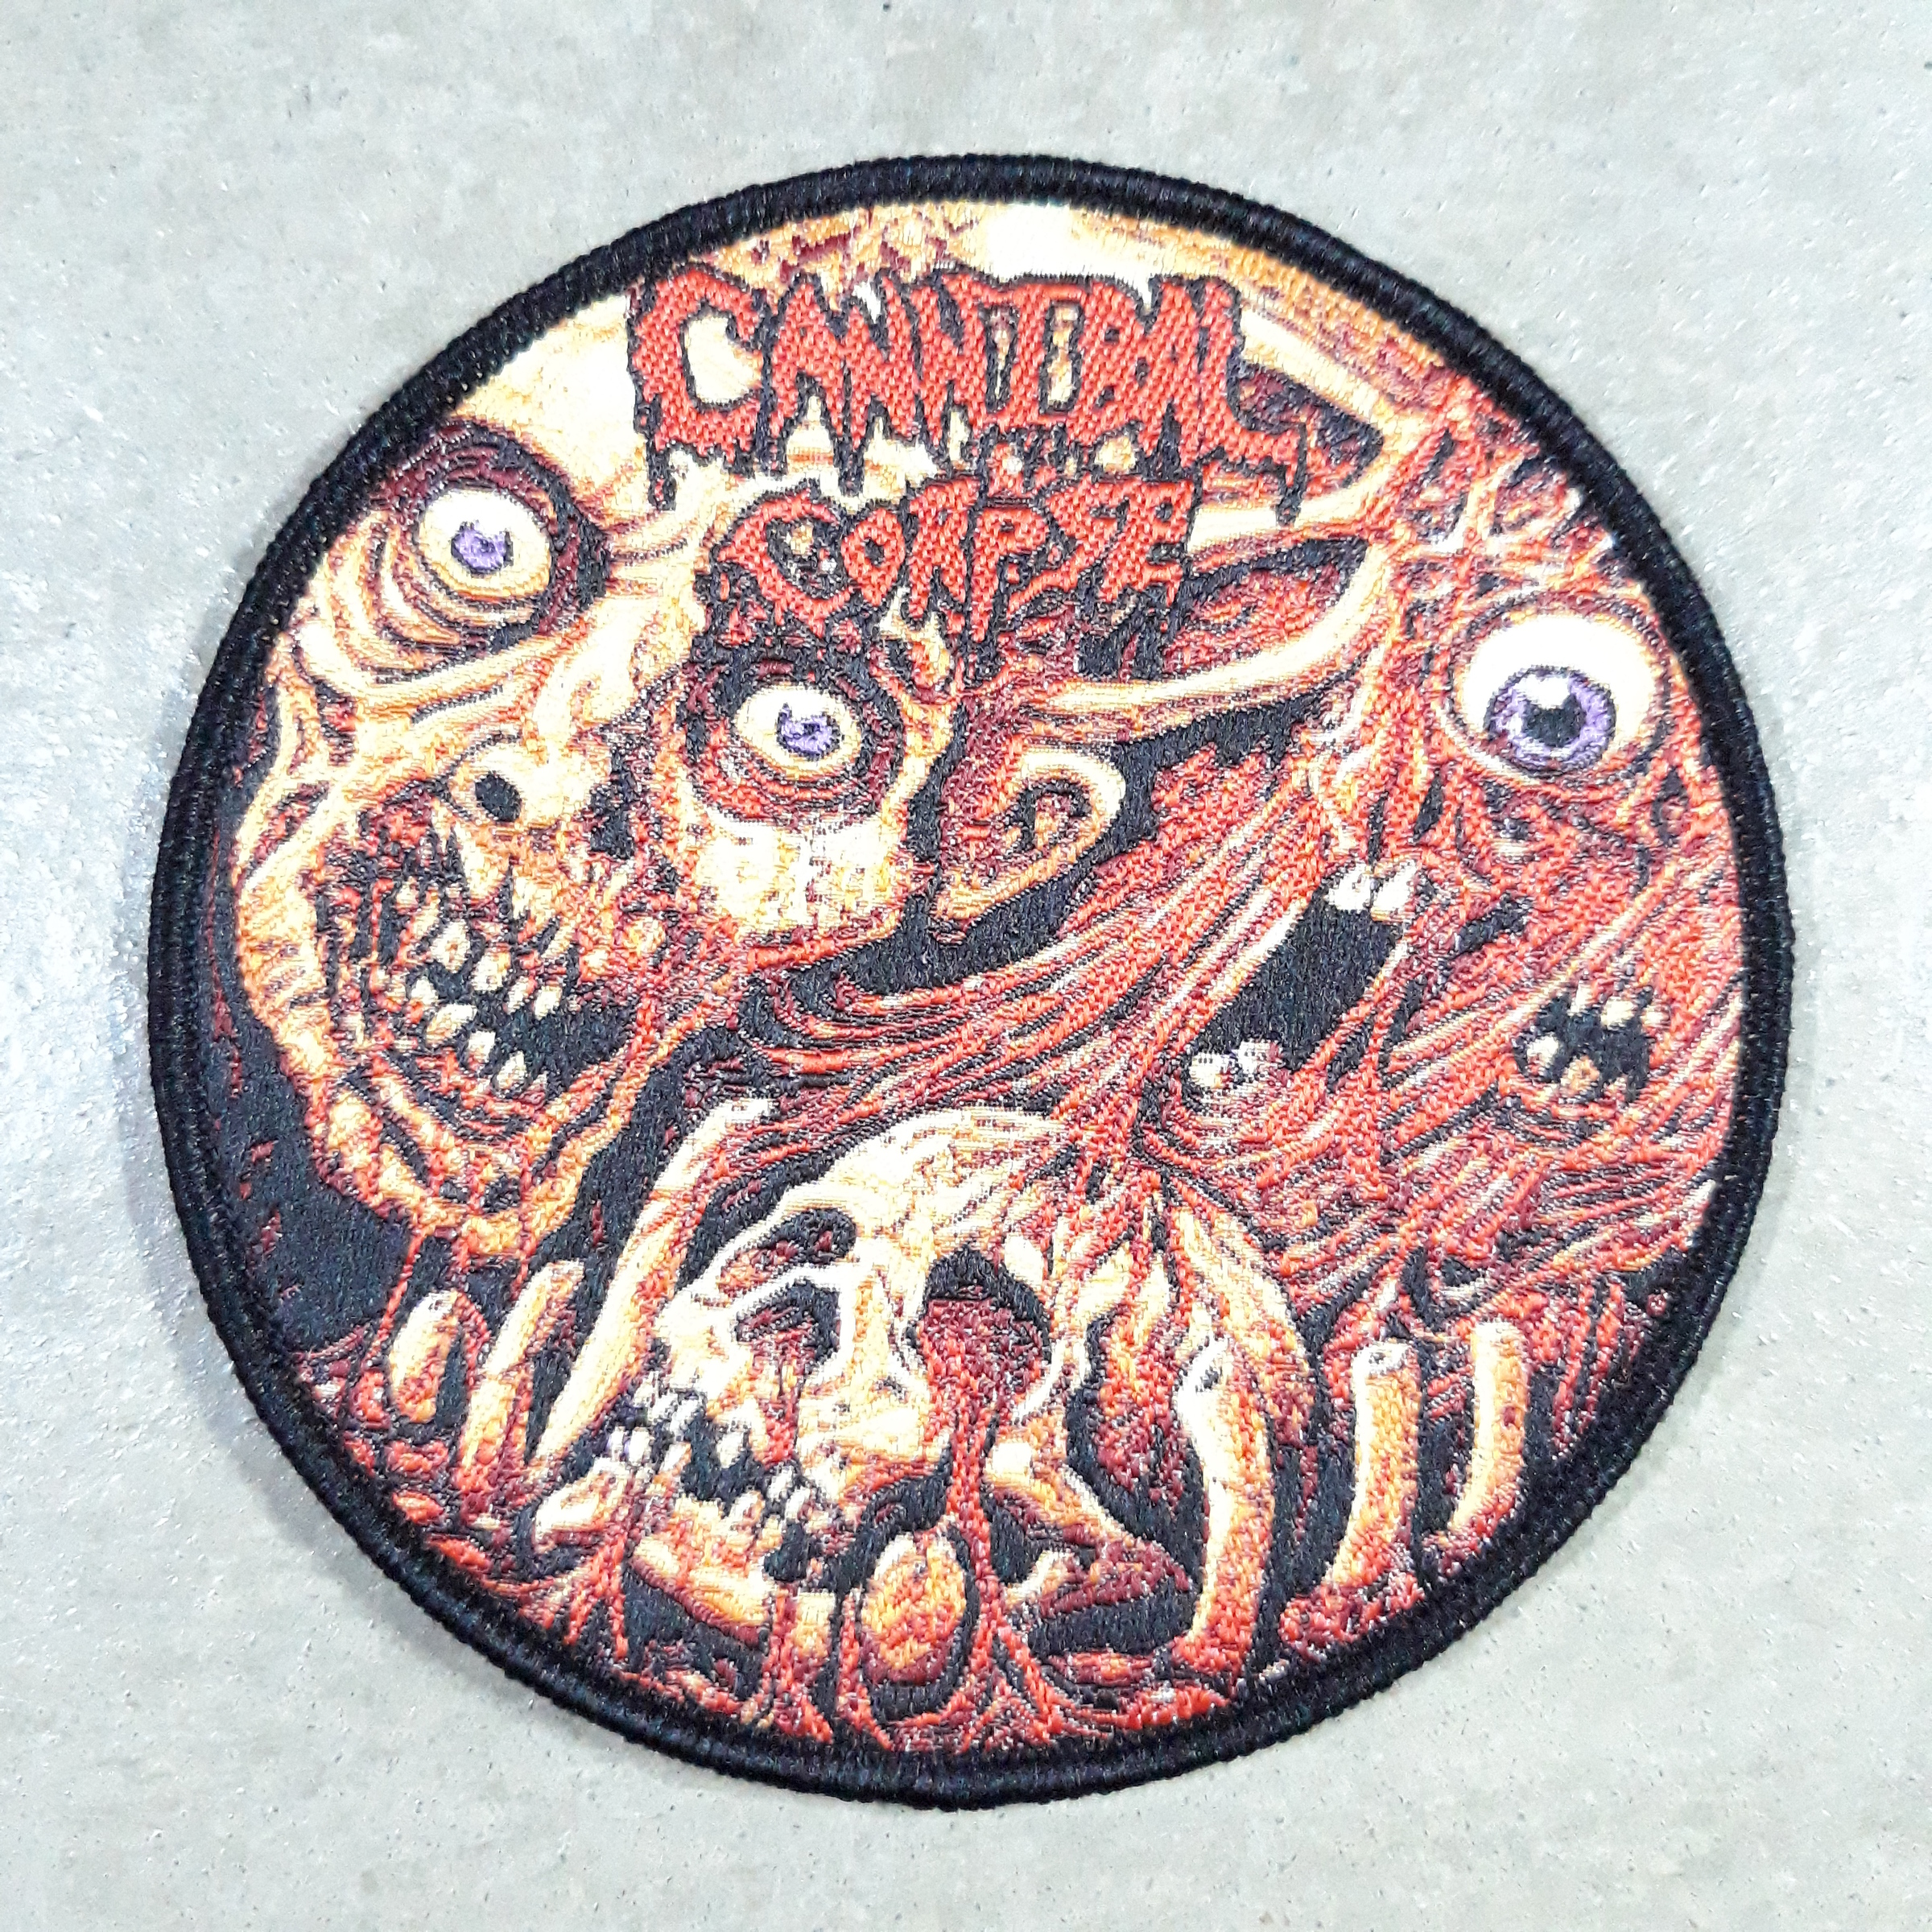 Cannibal corpse round woven patch.jpg